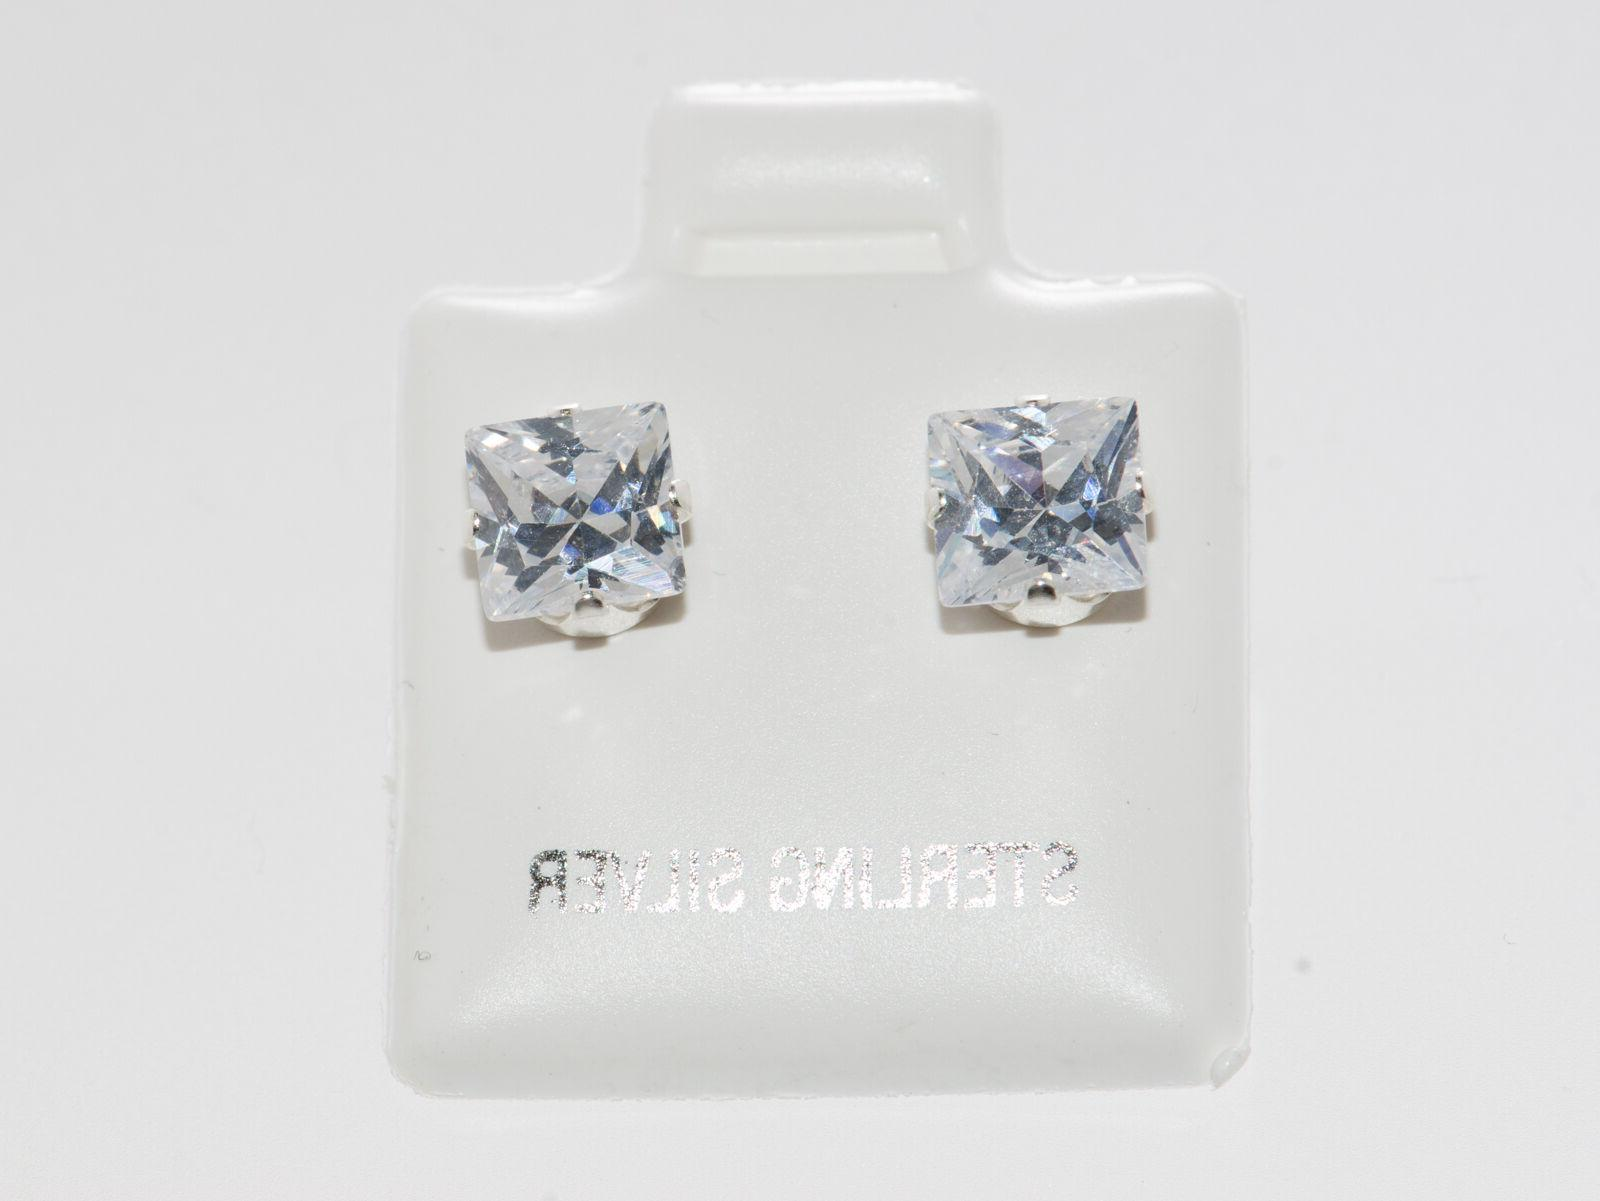 925 Sterling Silver Square Stud Earrings Clear CZ Cubic Zirc